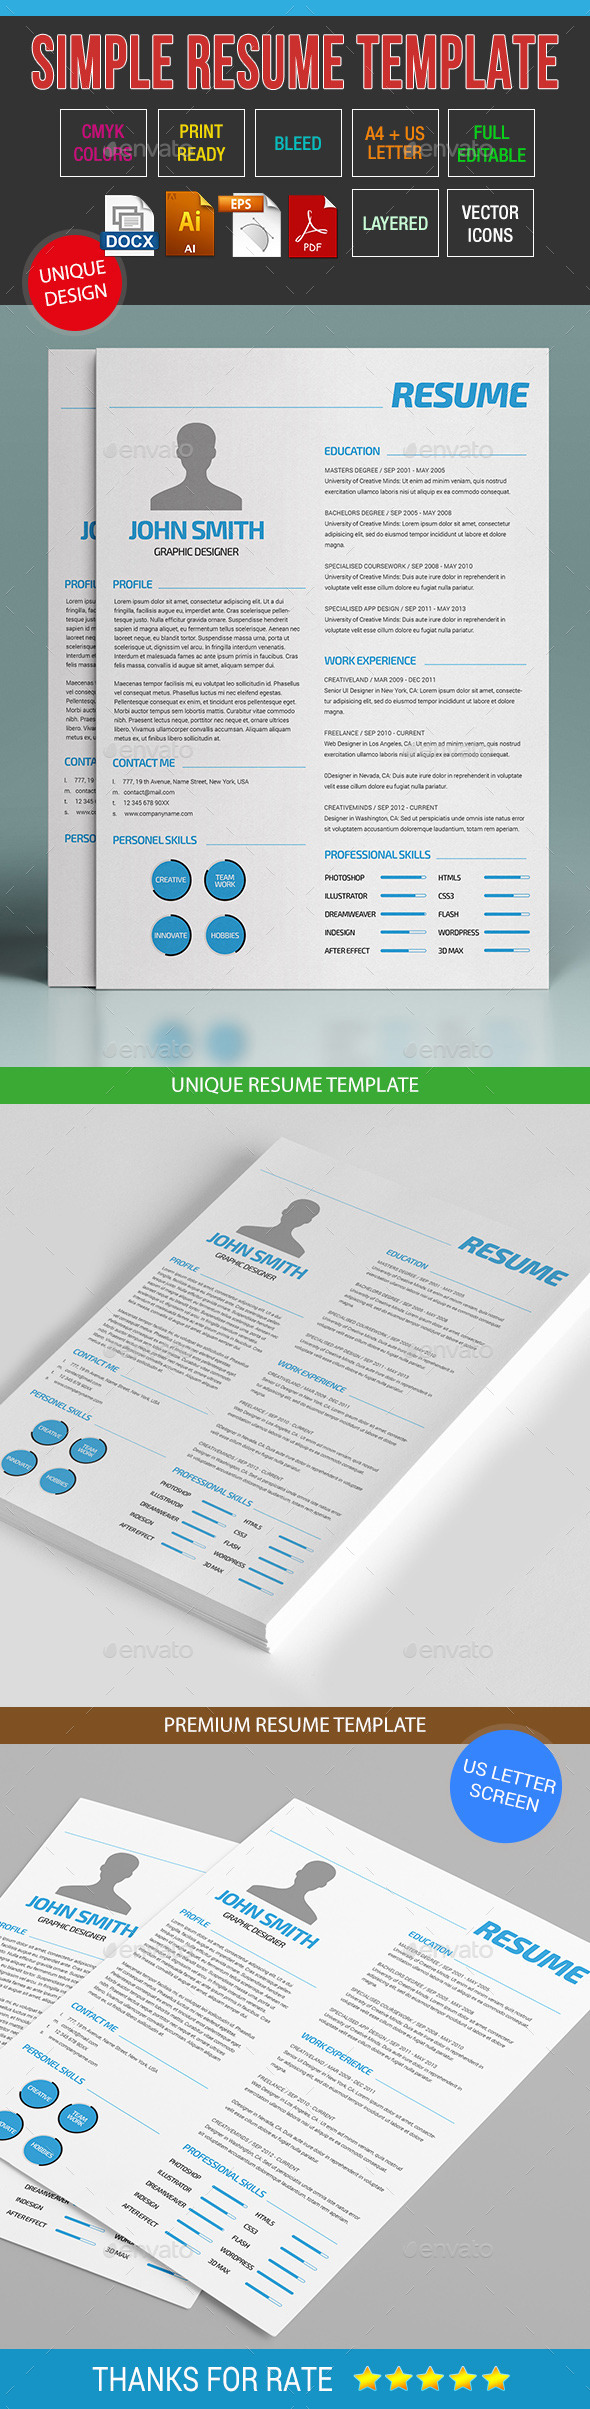 GraphicRiver Simple Resume Template 13 9444482